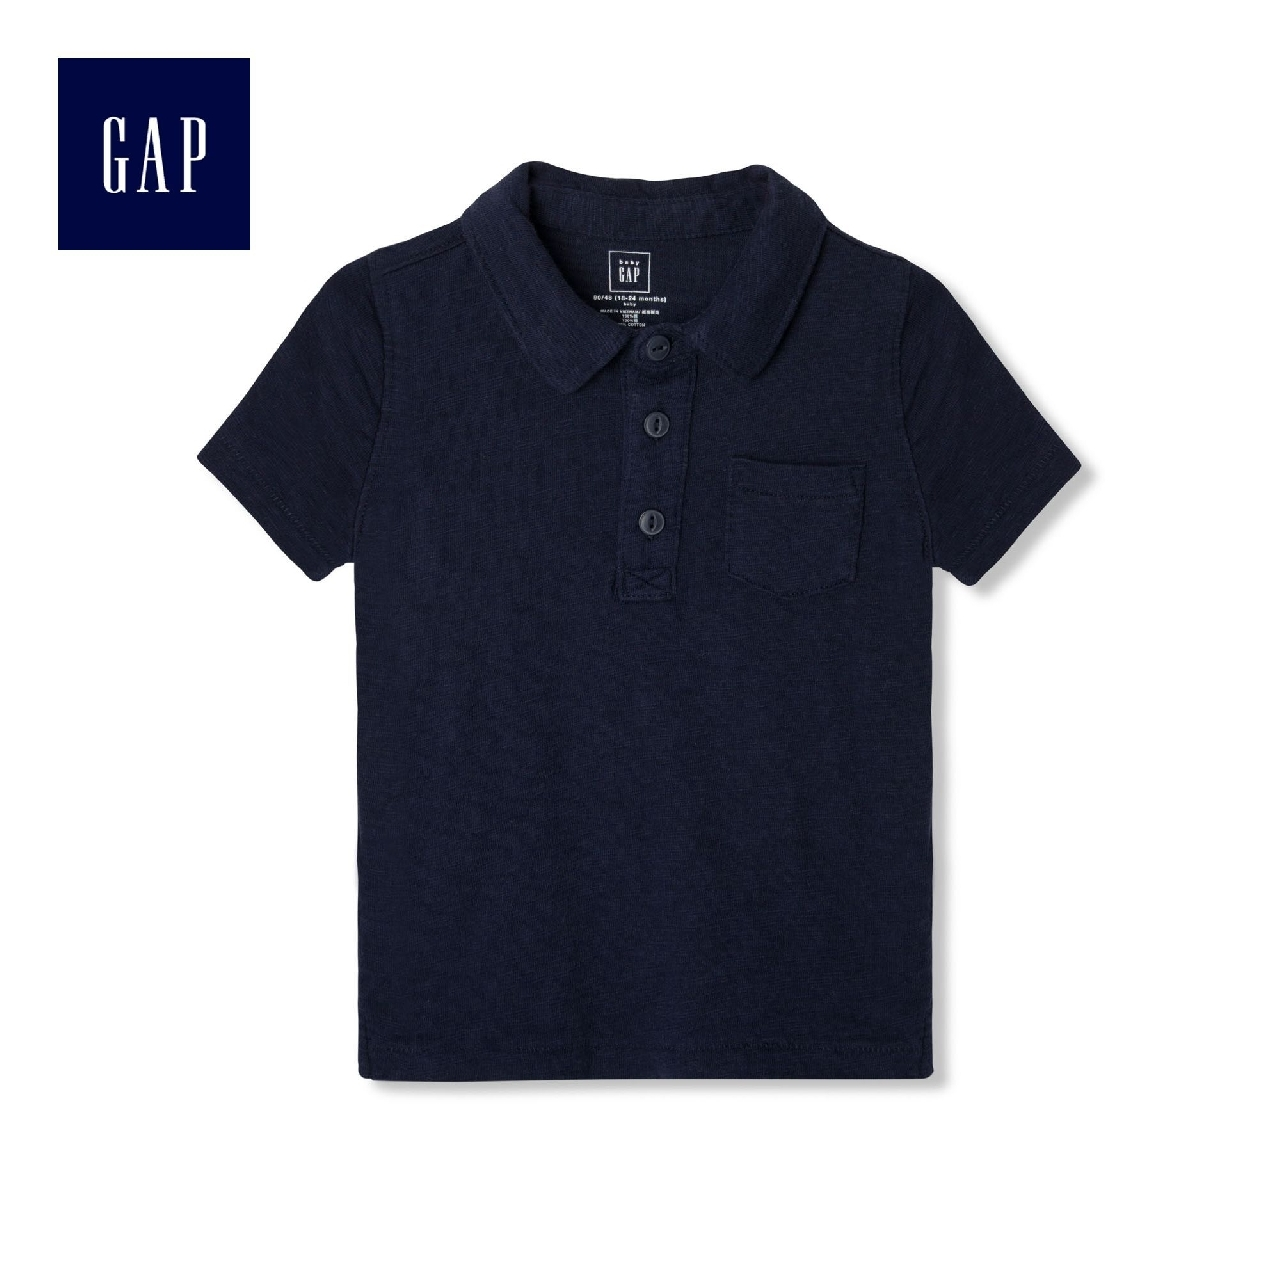 [USD 29.56] Gap baby boy comfortable cotton short-sleeved ...